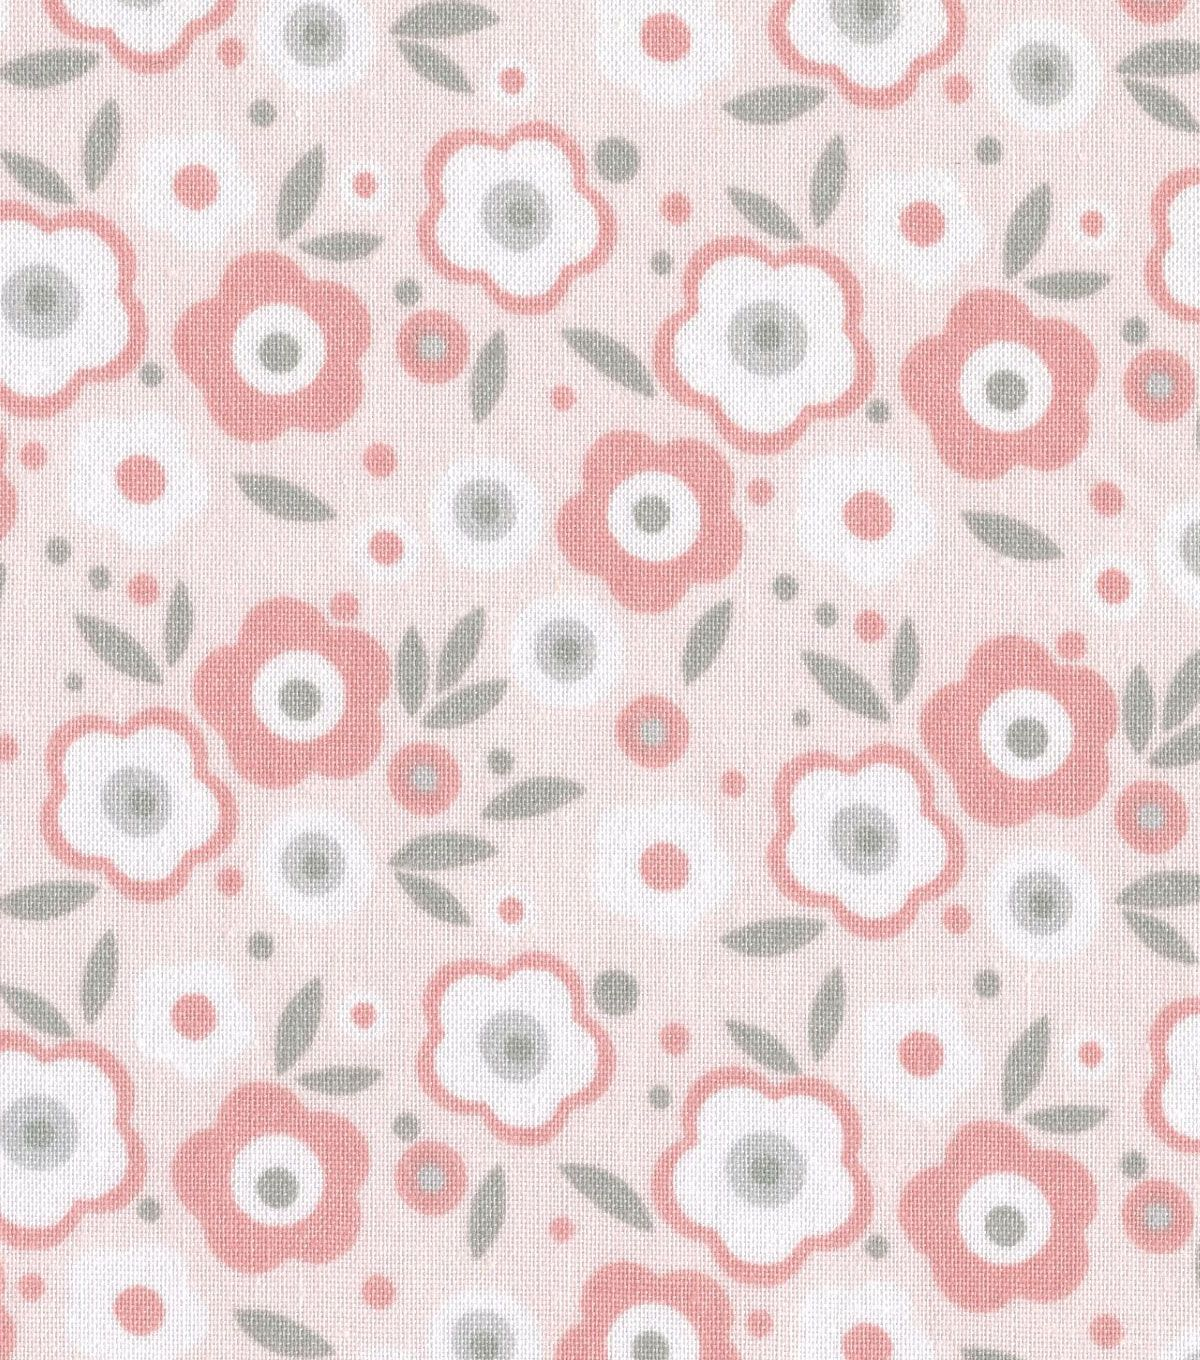 Nursery Fabric Baby Basic Floral Pink & Gray & White | Sew sew sew ...